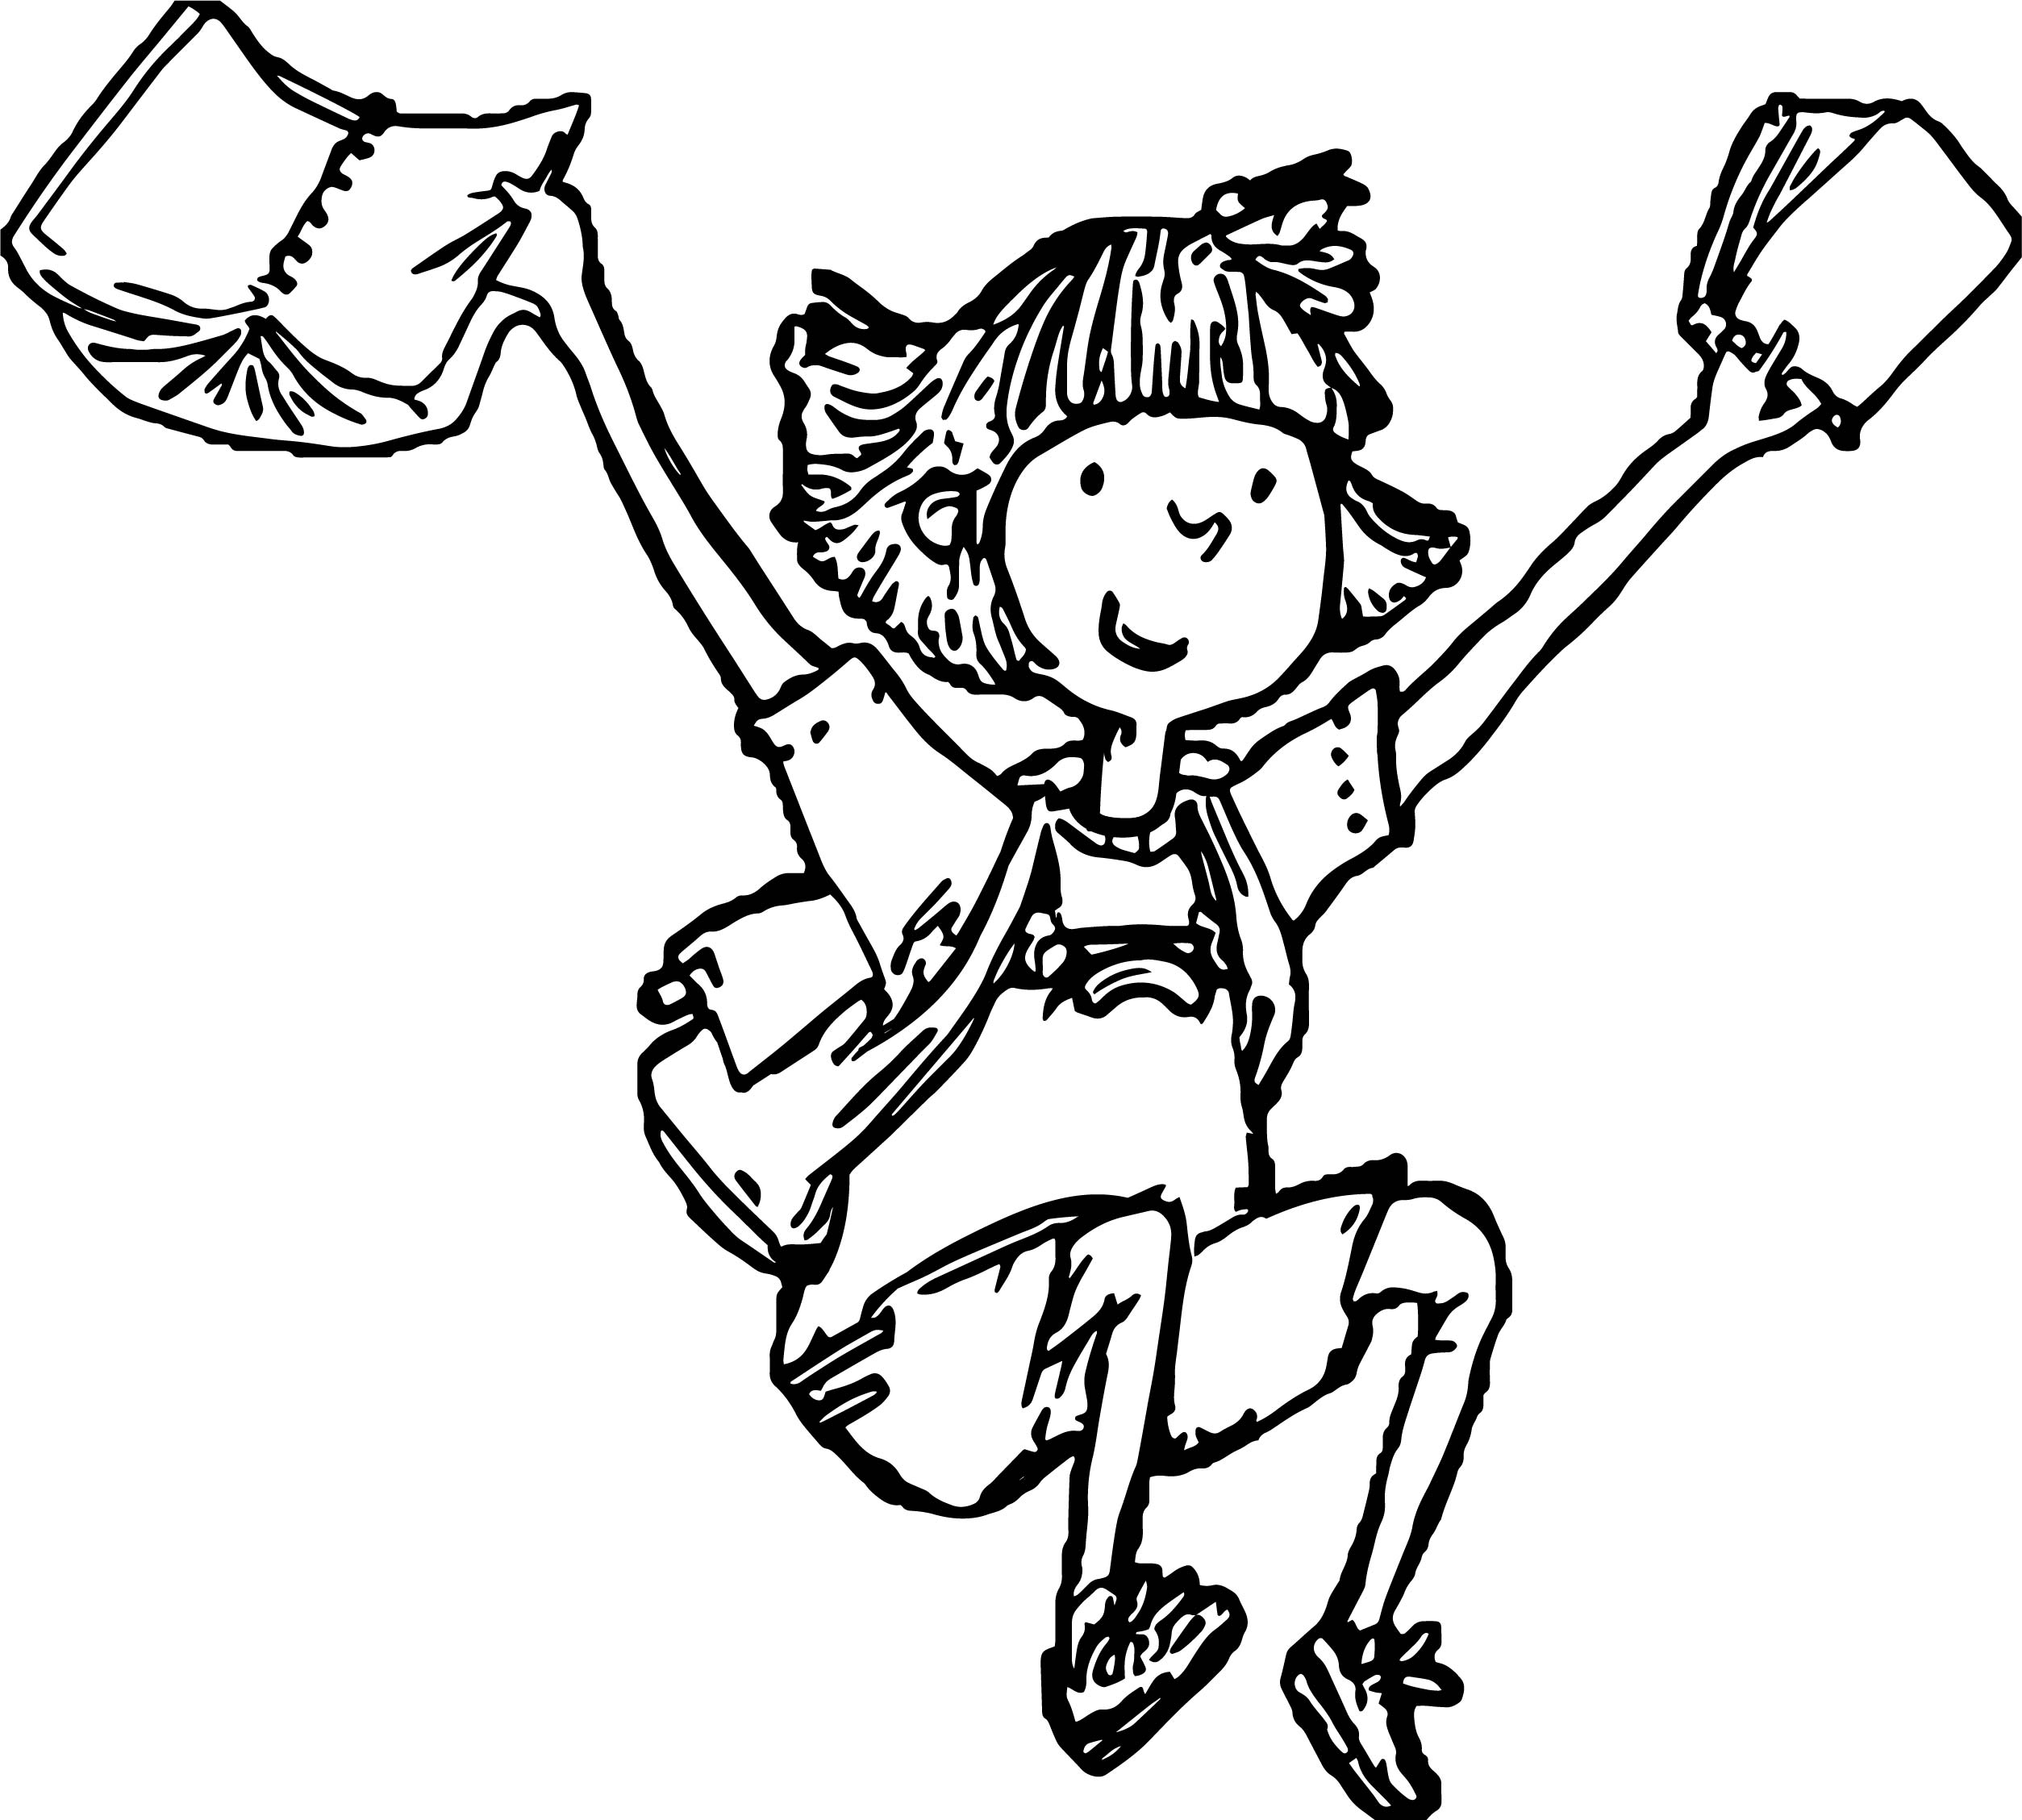 Uncategorized Amelia Bedelia Coloring Pages amelia bedelia finish school coloring page wecoloringpage page